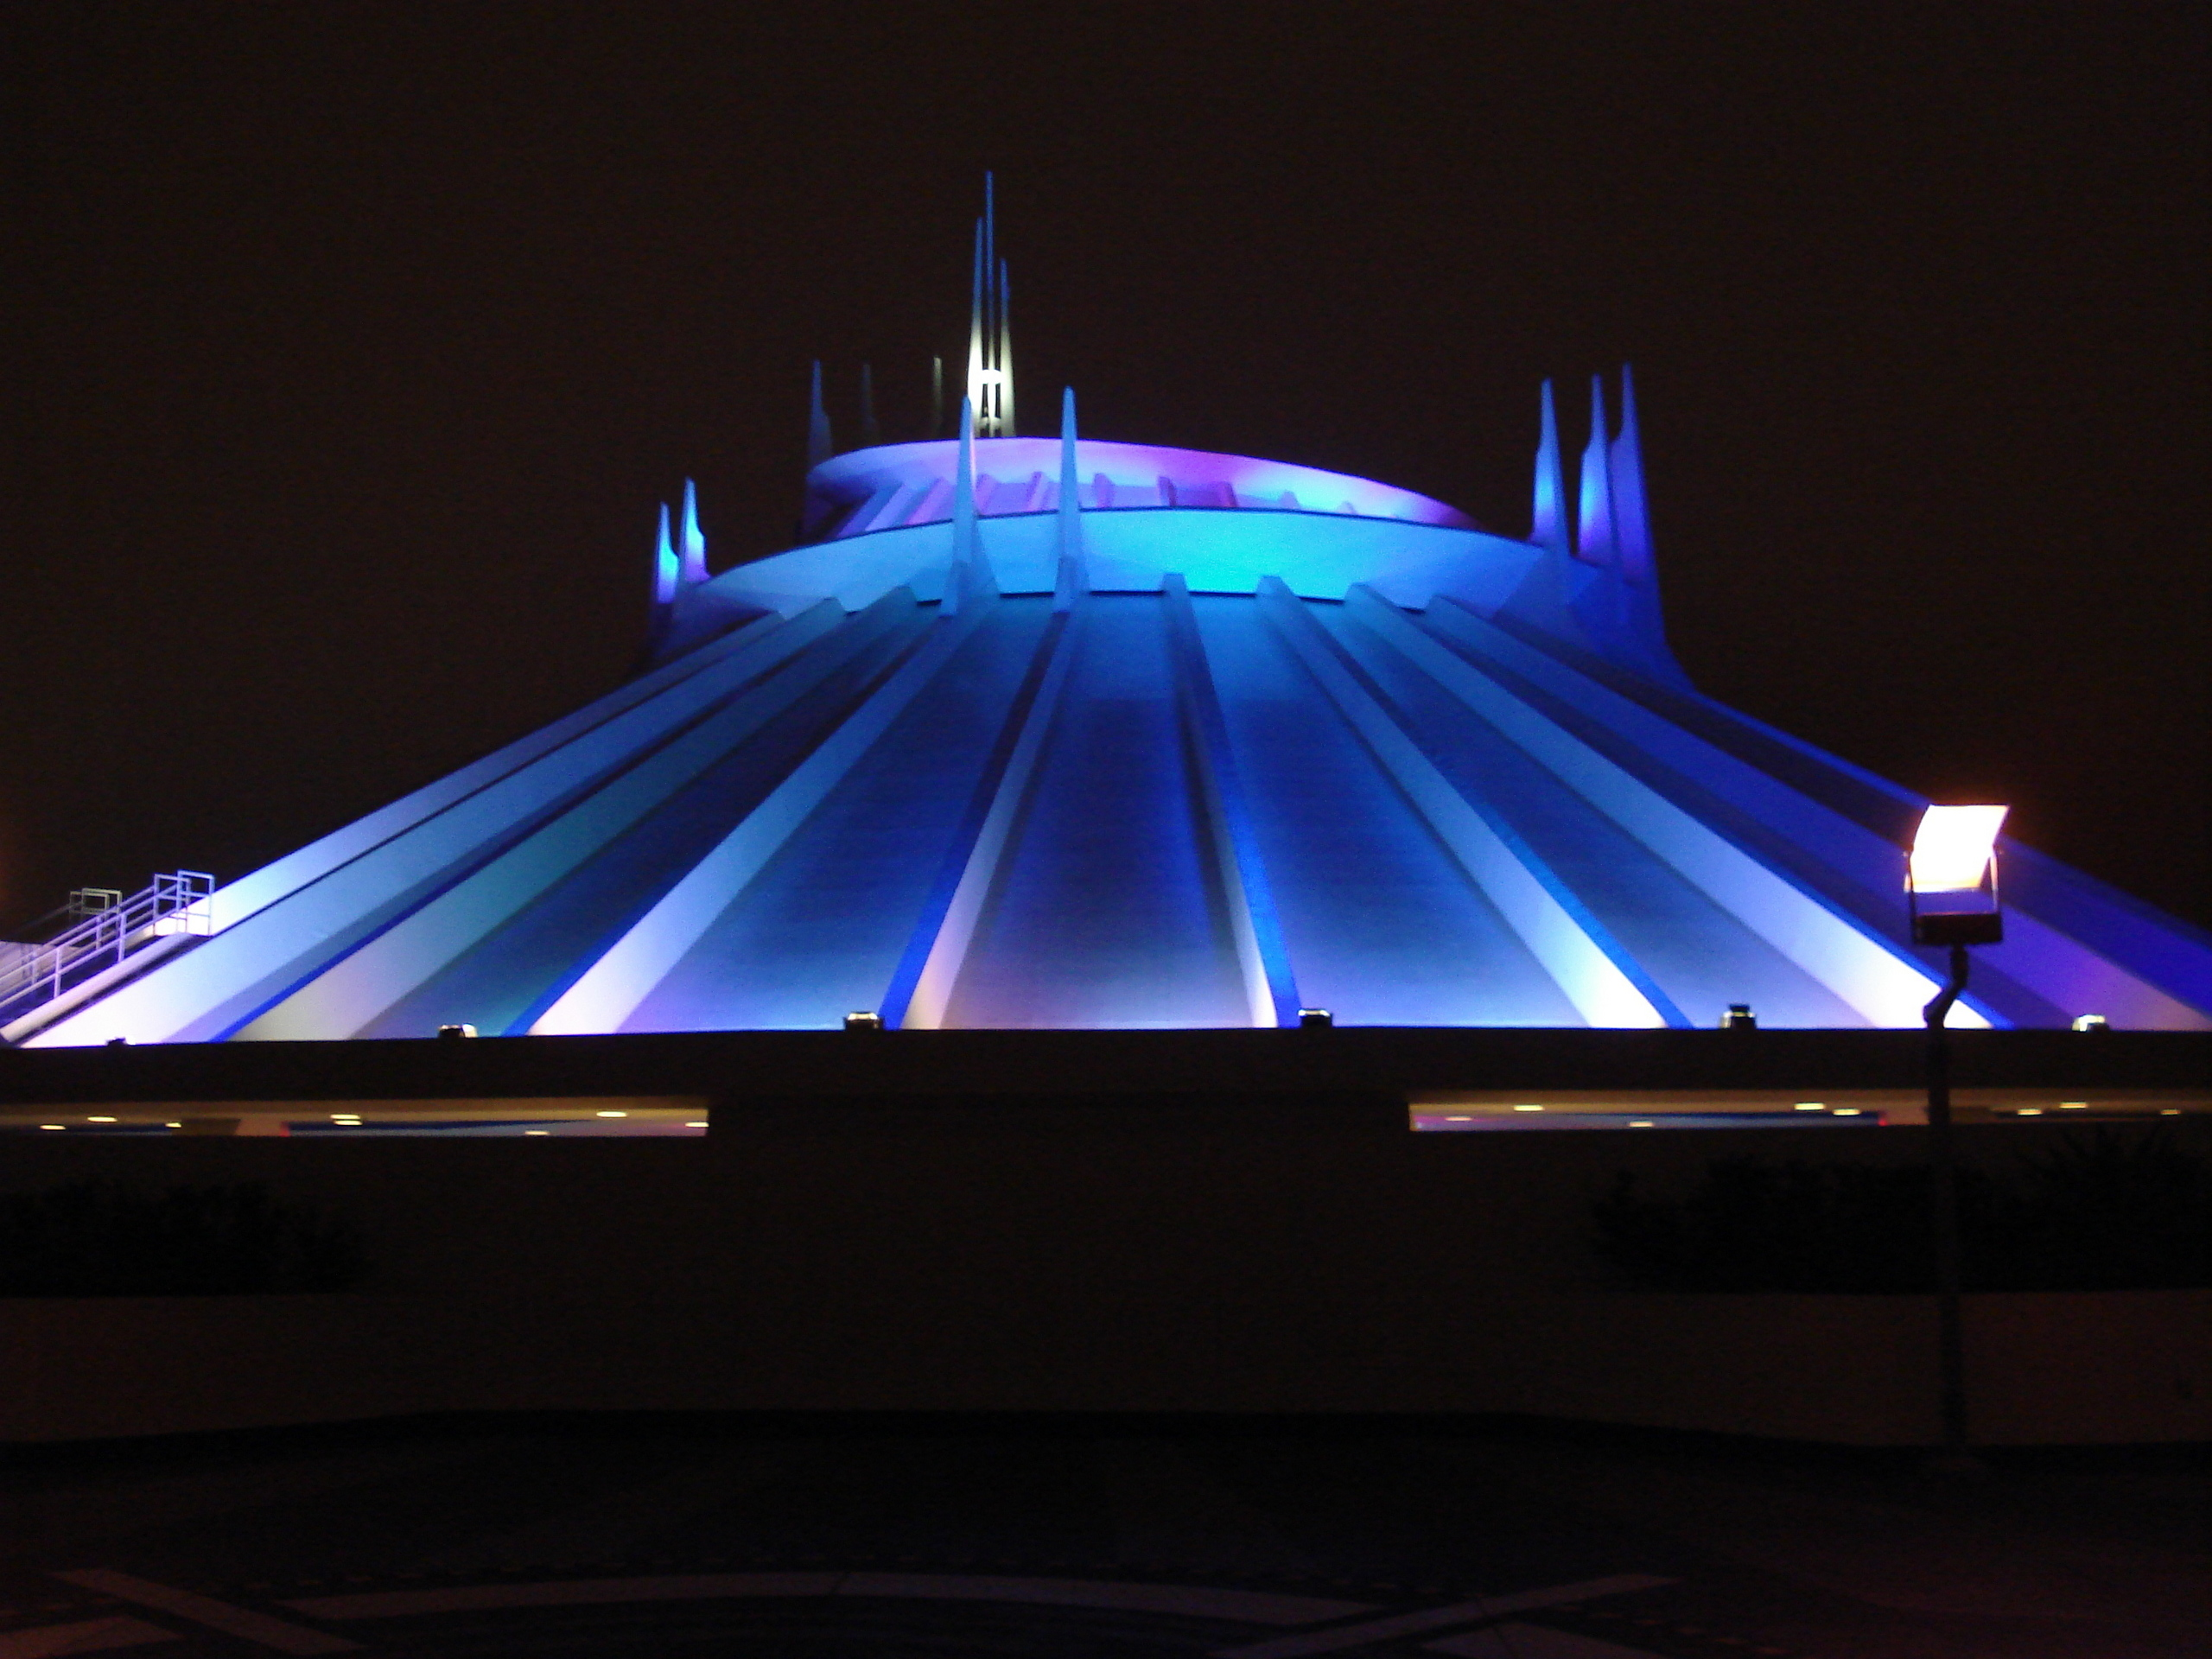 Disney Land Images Space Mountain At Night HD Wallpaper And Background Photos